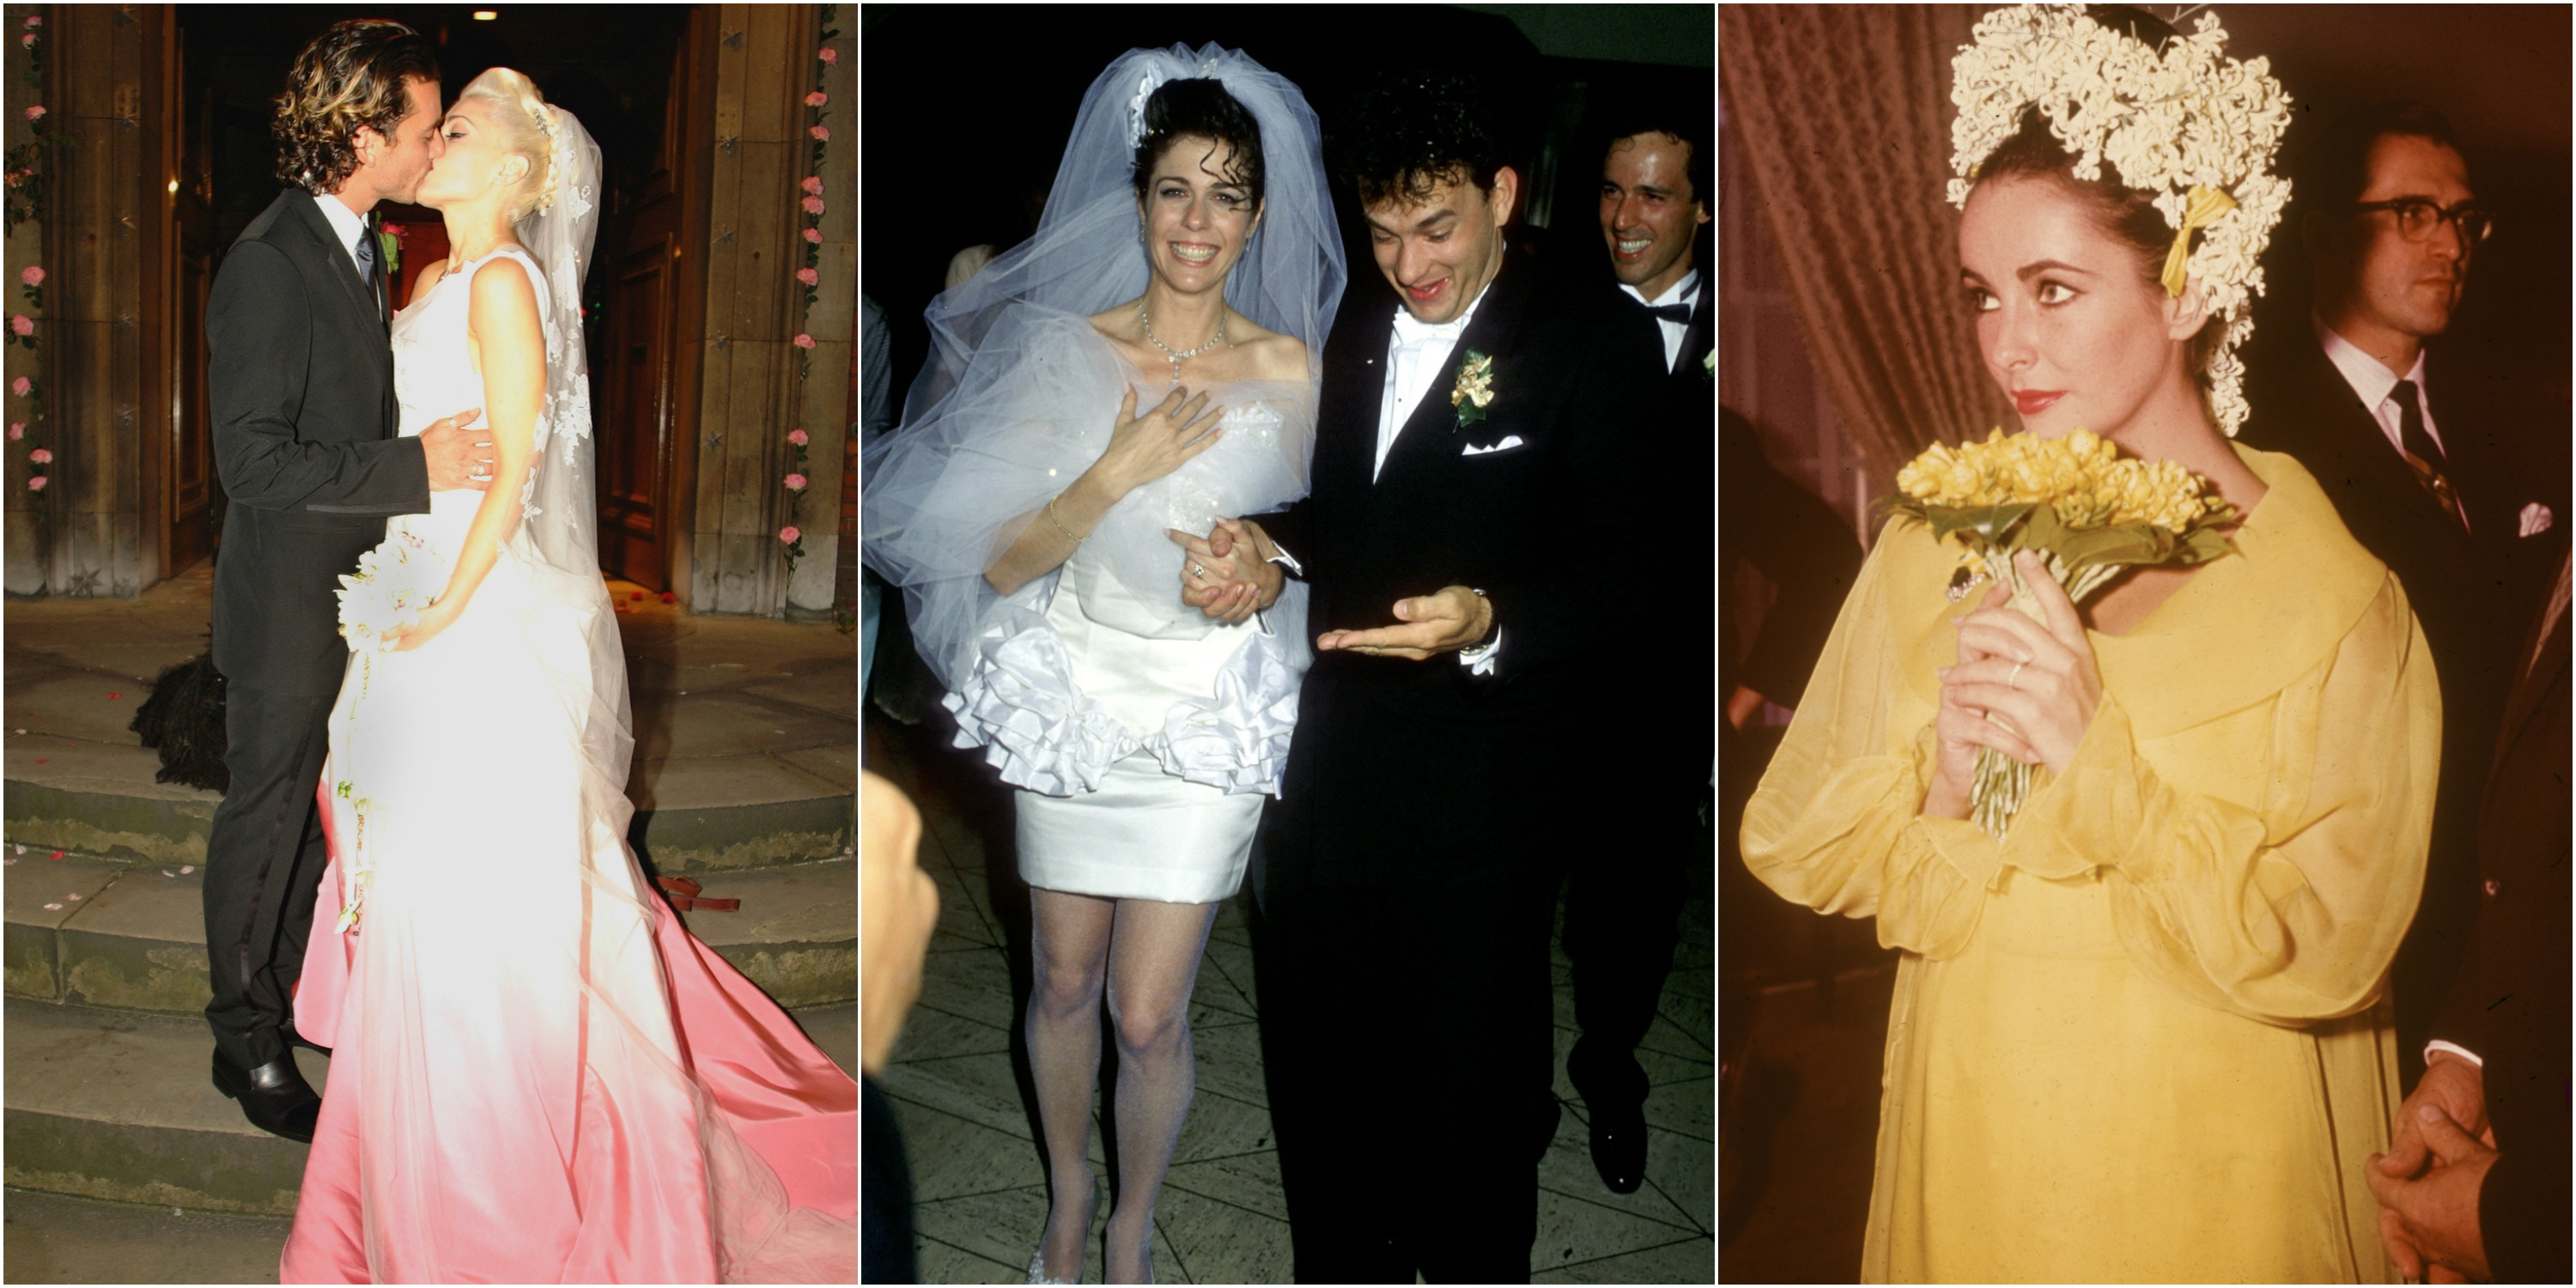 The 16 Most Scandalous Wedding Dresses Of All Time